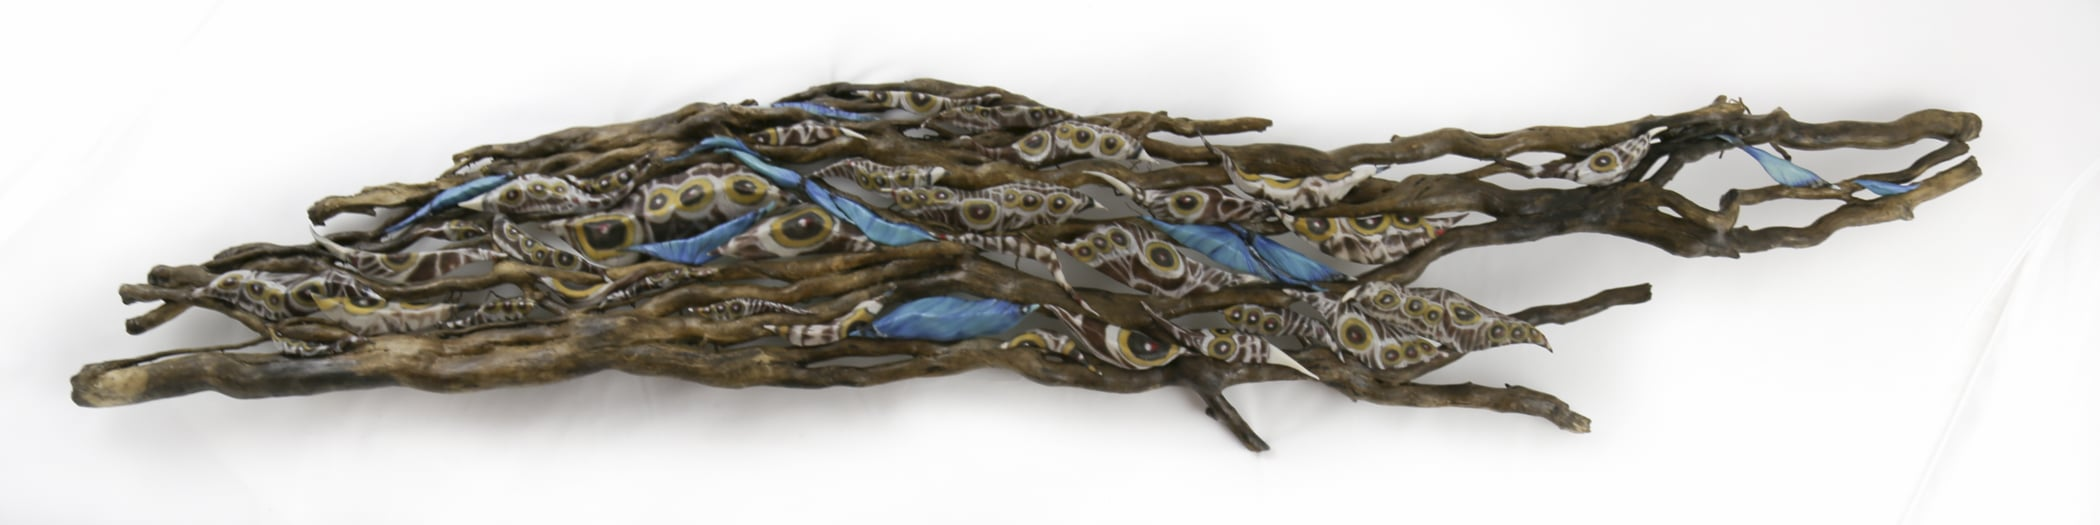 """""""Alive in the Flow"""" (13 x 59 x 5)  (Multiple pods created from macro photography of the outer and underside of the Common Blue Morpho Butterfly wings, nestled in tree roots which became dislodged in a recent flood... this piece is a wall hanging)."""